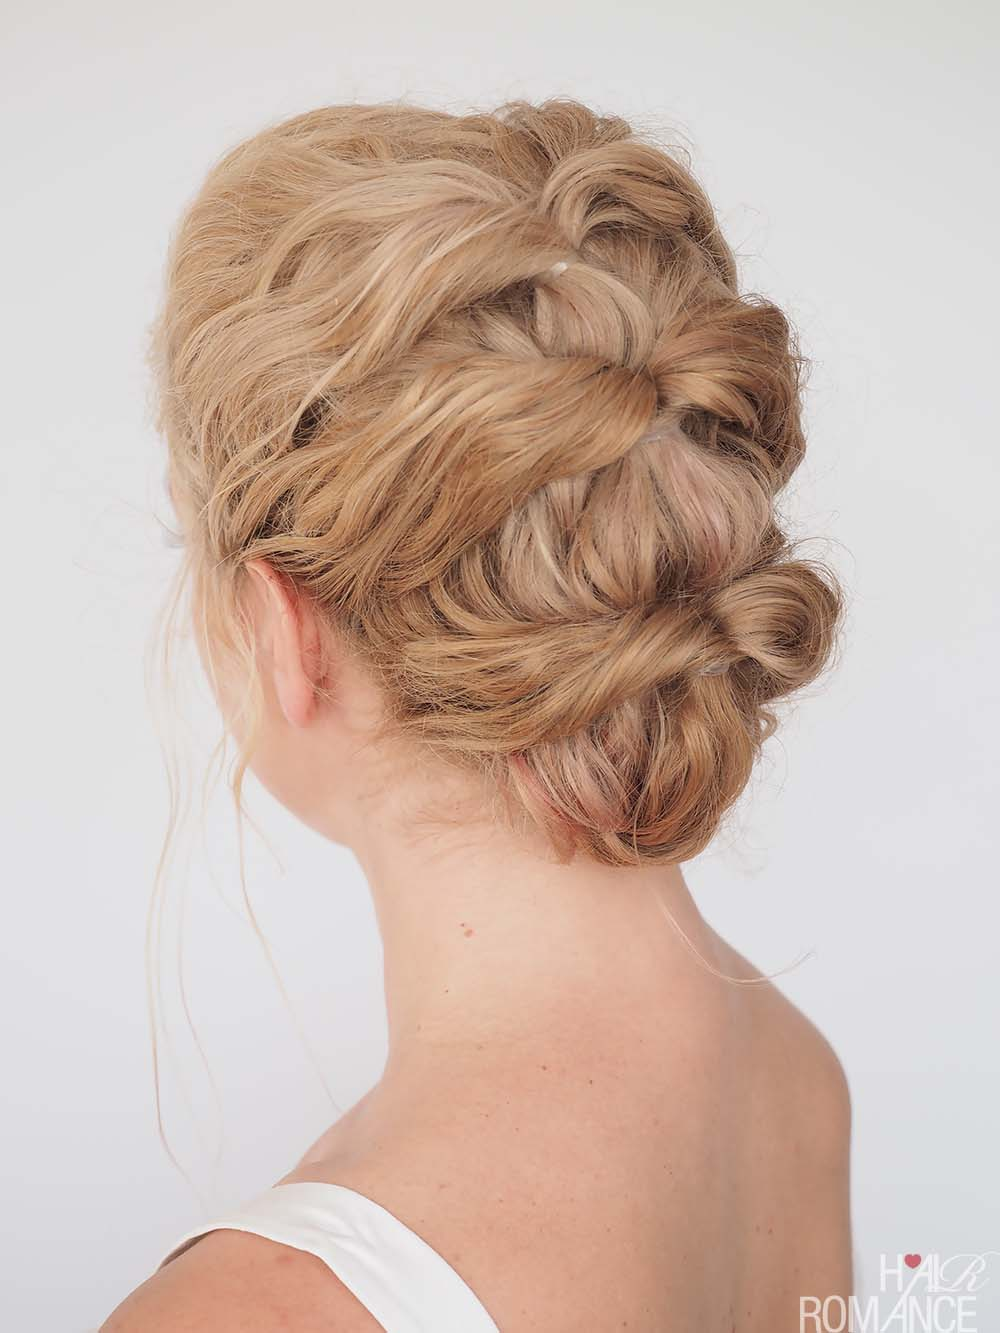 Quick and easy twist hairstyle tutorial – Get great hair fast - Hair ...